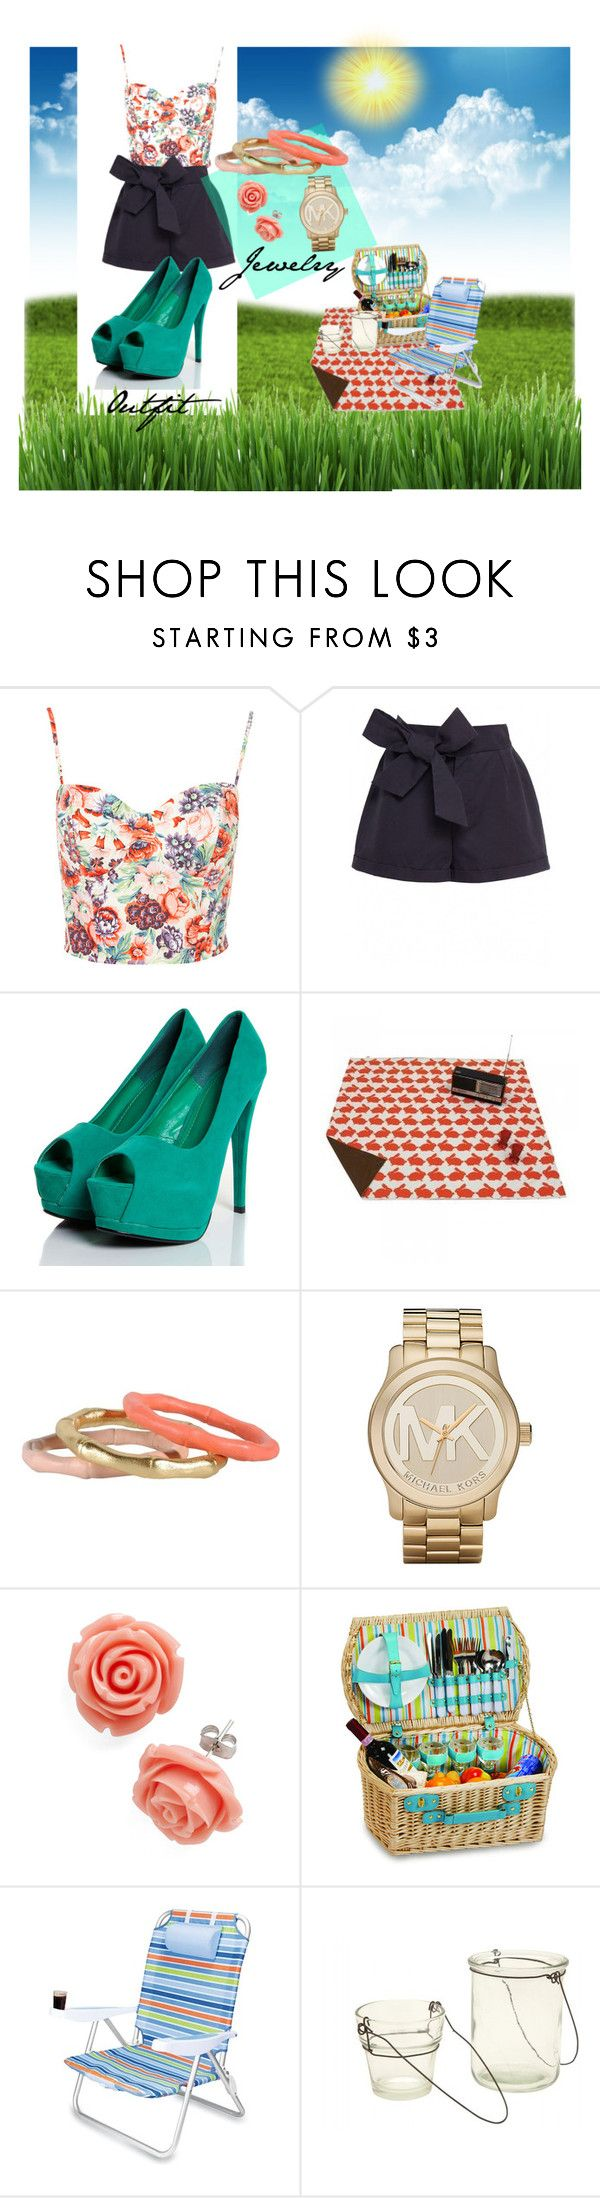 """Picnic date outfit"" by melgg ❤ liked on Polyvore featuring Twenty8Twelve, Natalia Brilli, Michael Kors, Jayson Home, watch, arm candy, floral corset, high waisted shorts, romantic and high heels"